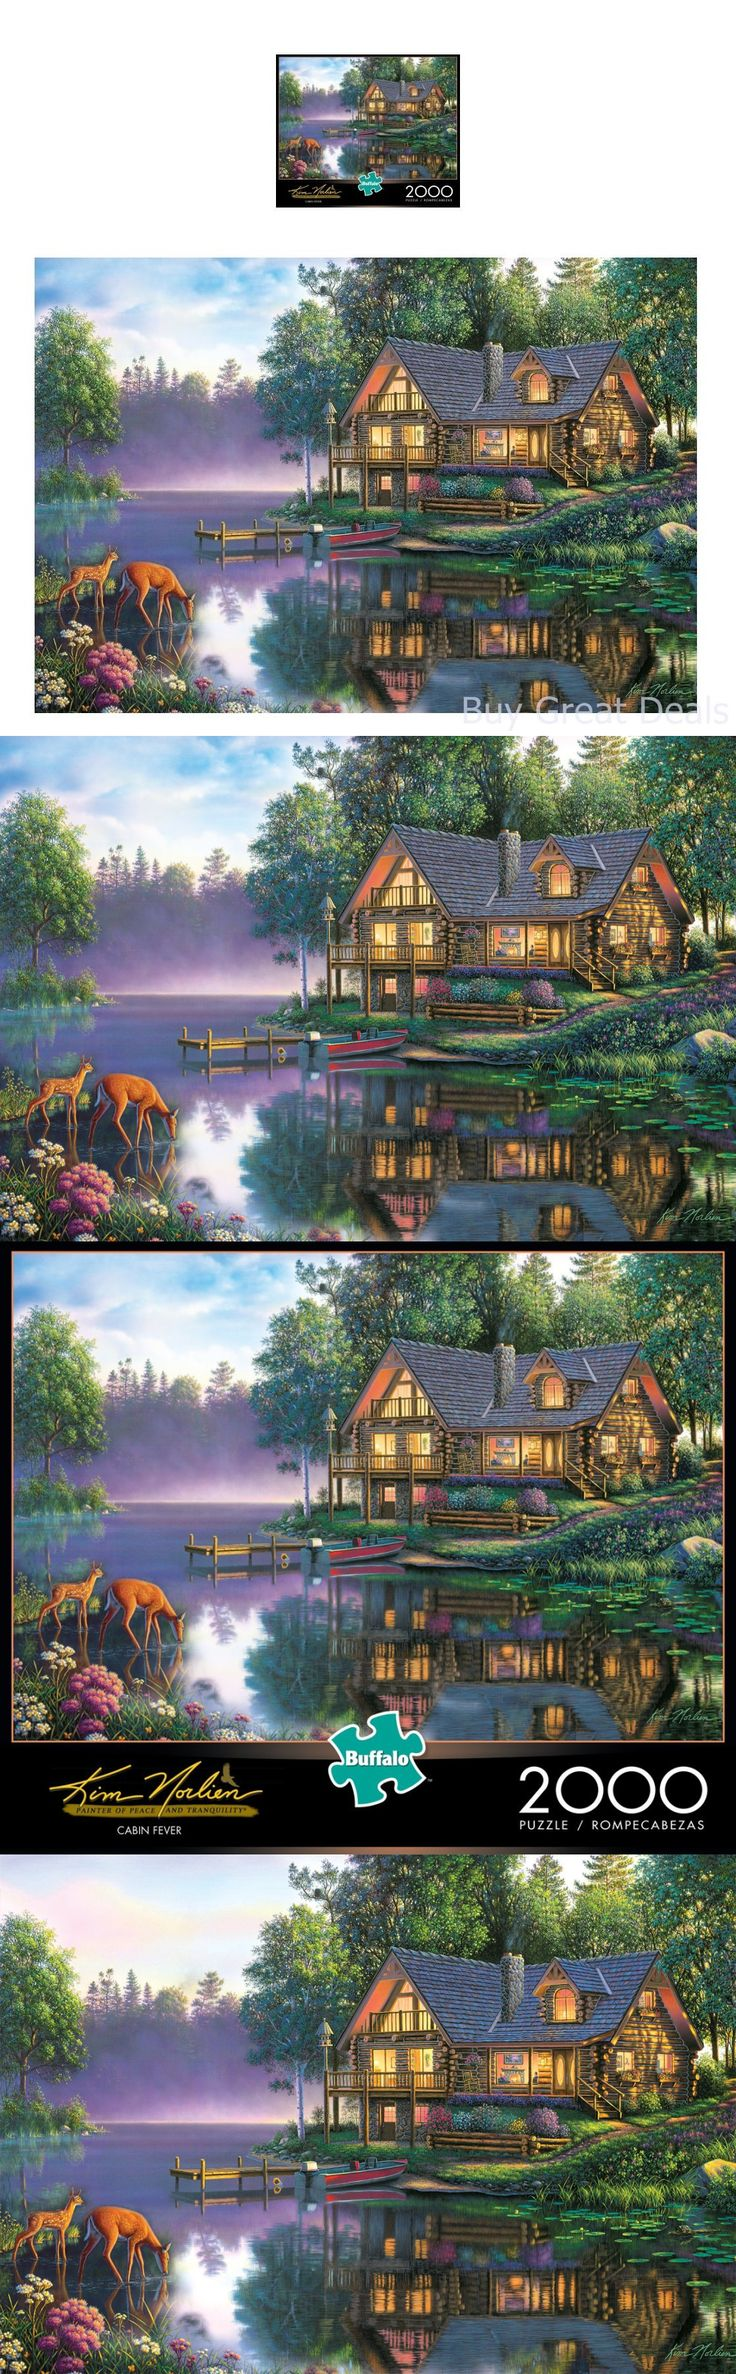 Jigsaw 19183: Toy Kim Norlien Cabin Fever 2000 Pc Jigsaw Puzzle 38.5 Inx26.5 In Hobby Play Fun -> BUY IT NOW ONLY: $32.77 on eBay!